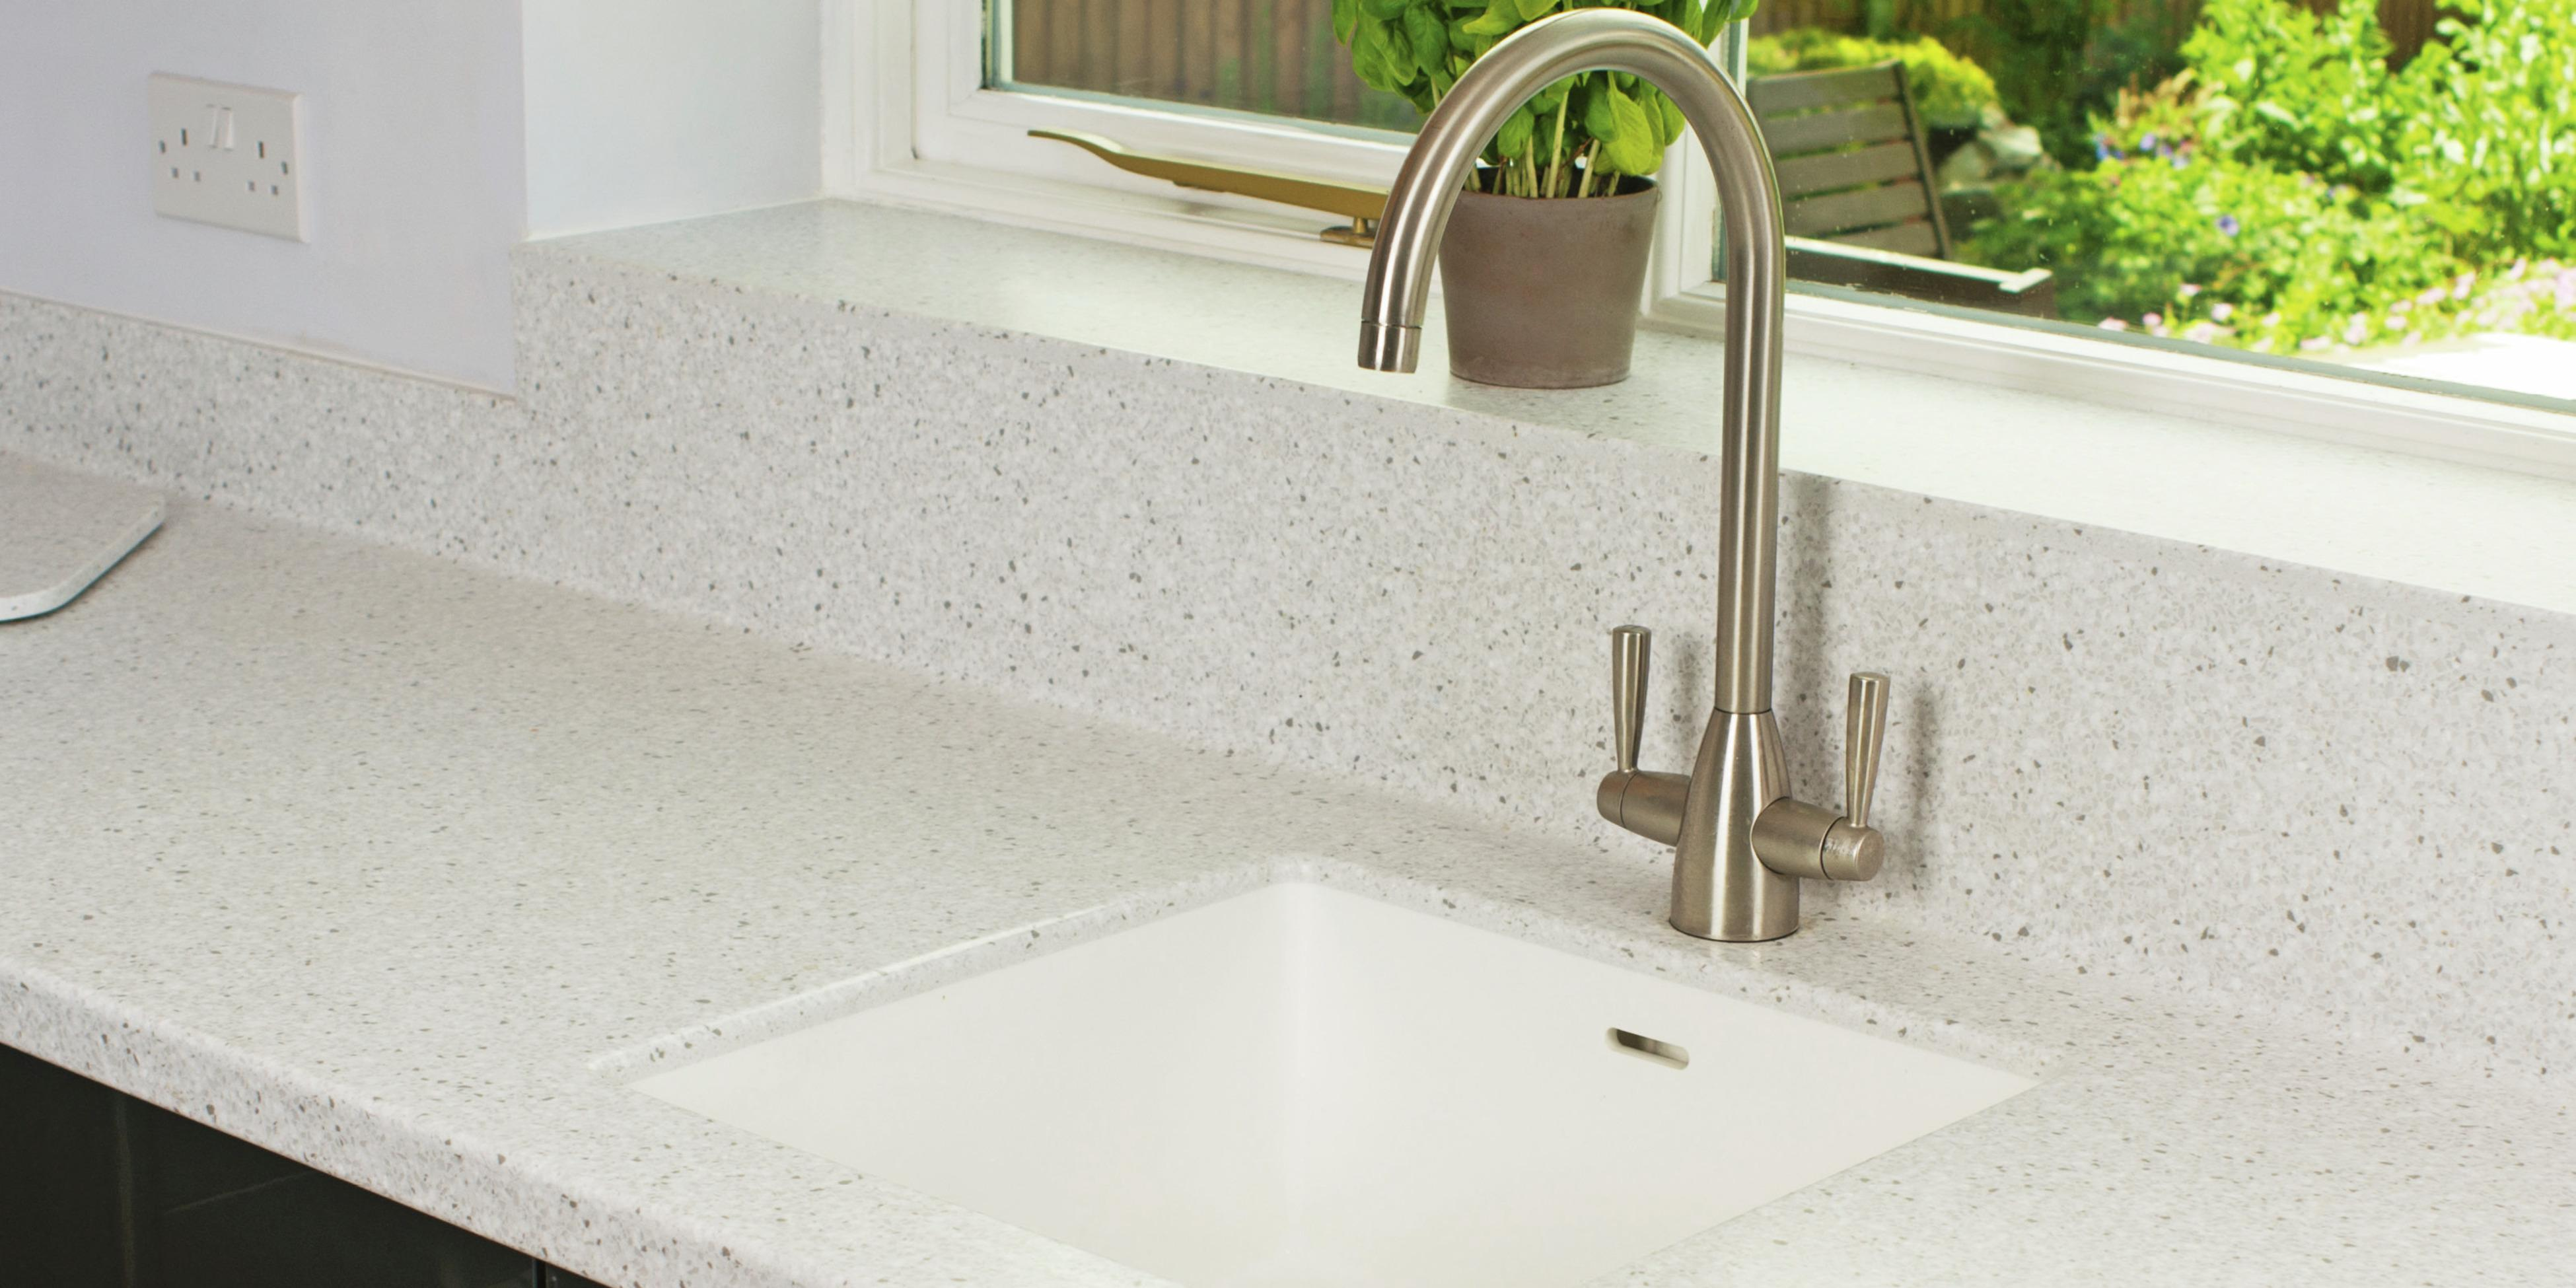 Stone kitchen benchtop with under-mounted sink